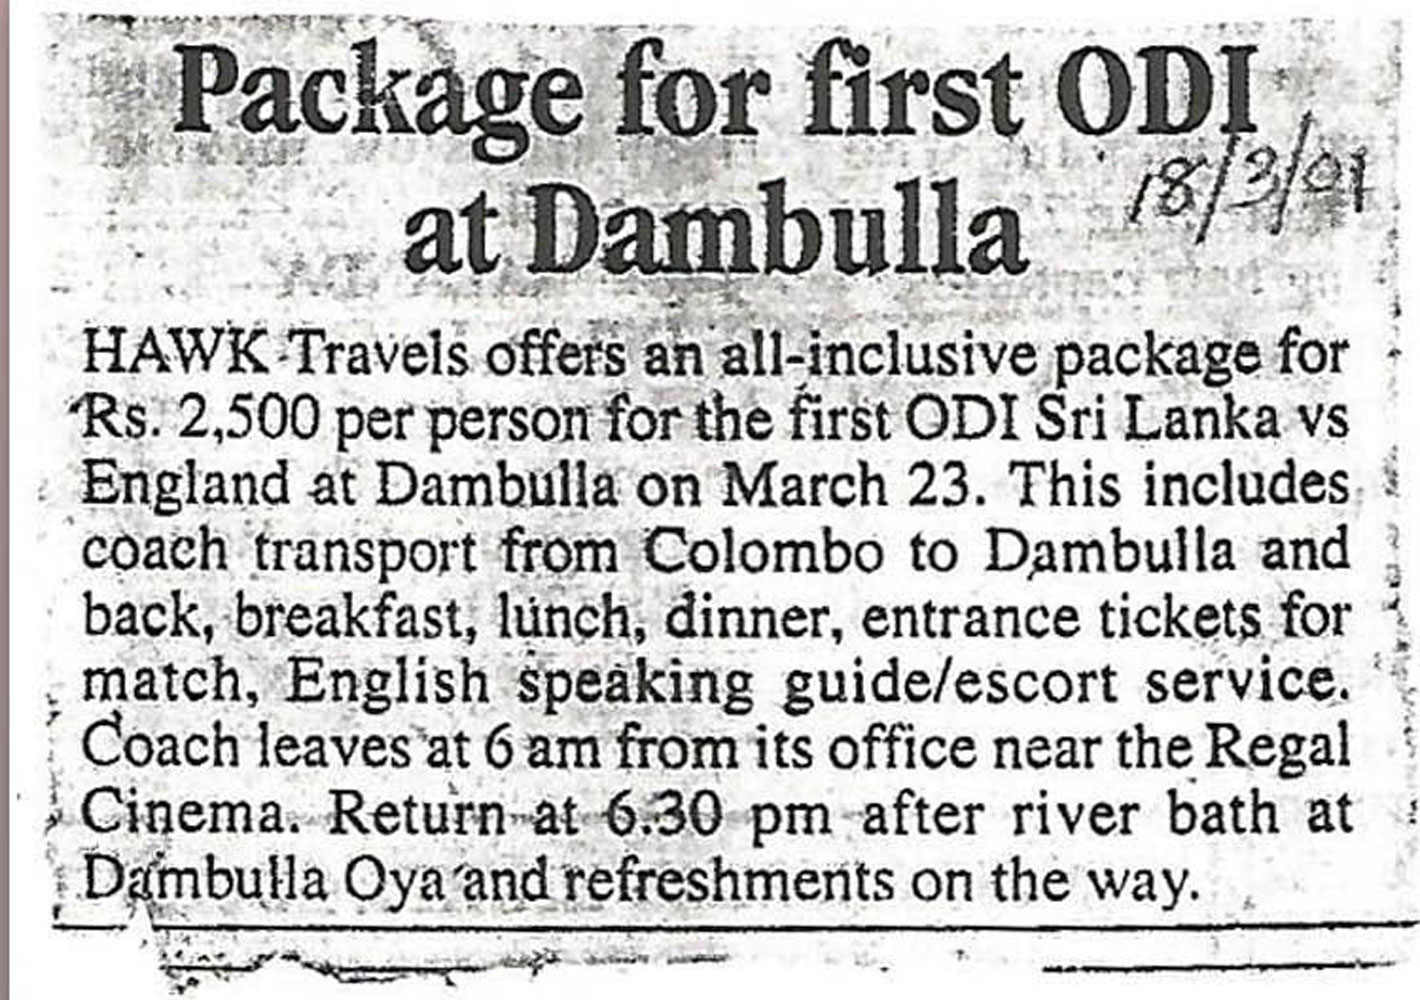 package for first ODI